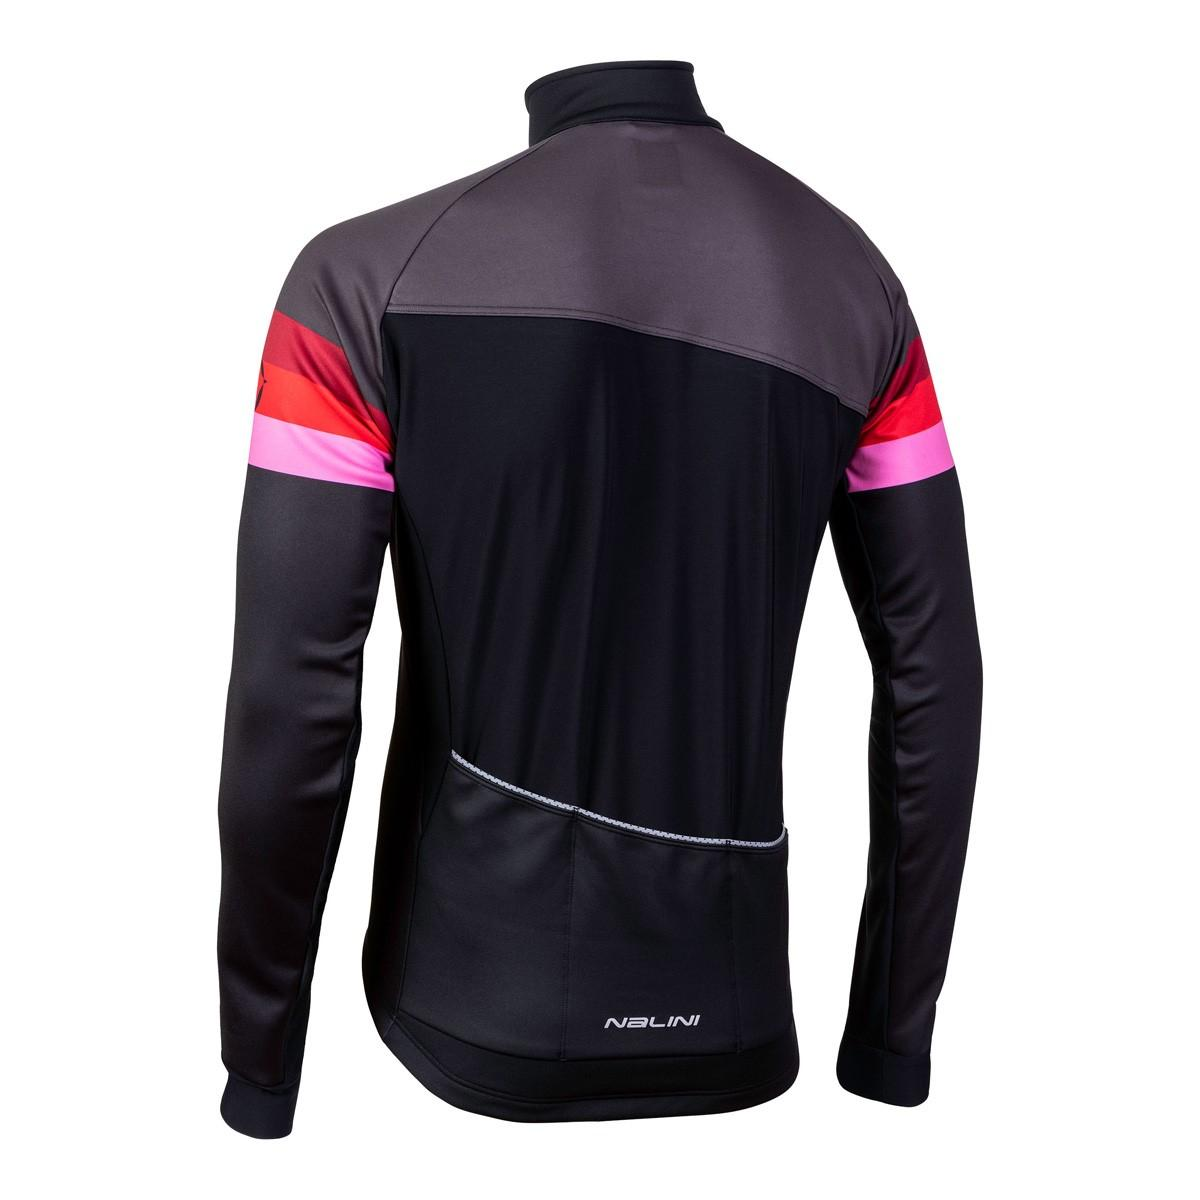 Afbeelding Nalini Fietsjack Heren Zwart Rood - AIW CRIT WARM JACKET 2.0 WINTER JACKET BLACK/ROSSO